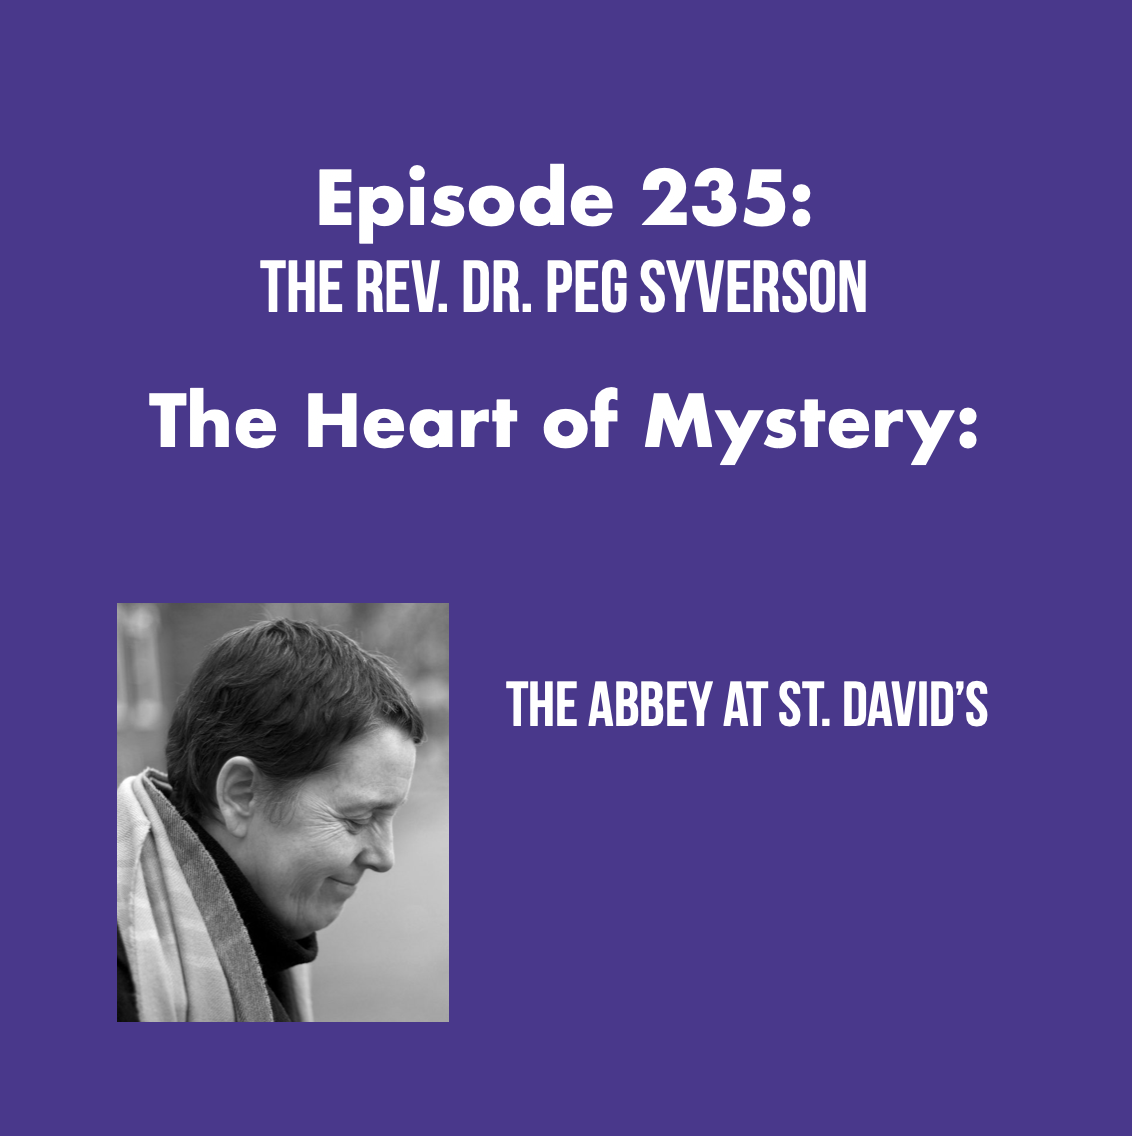 Episode 235: The Heart of the Mystery: Power and the Spiritual Life with The Rev. Peg Syverson